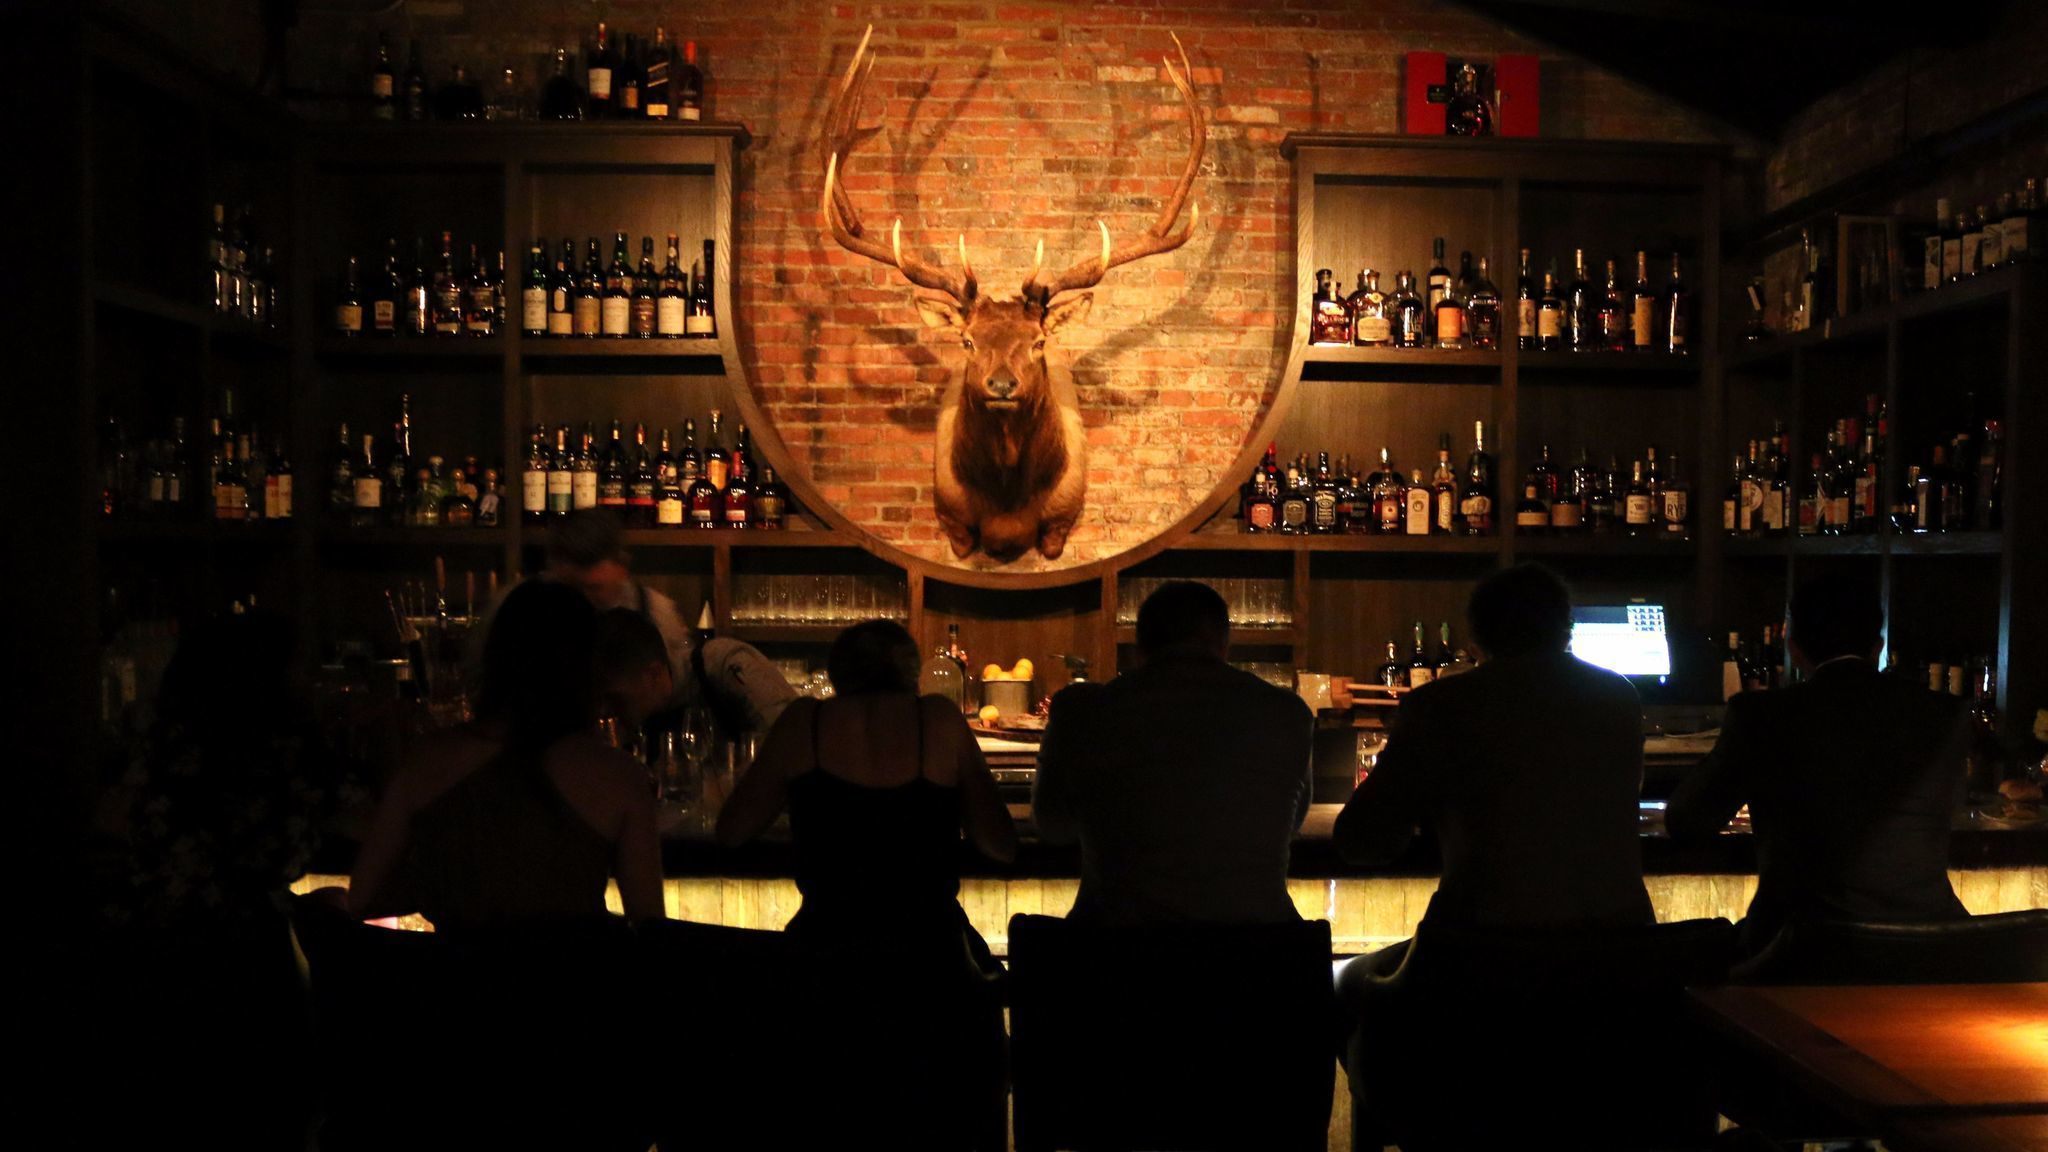 The elk room in Maryland